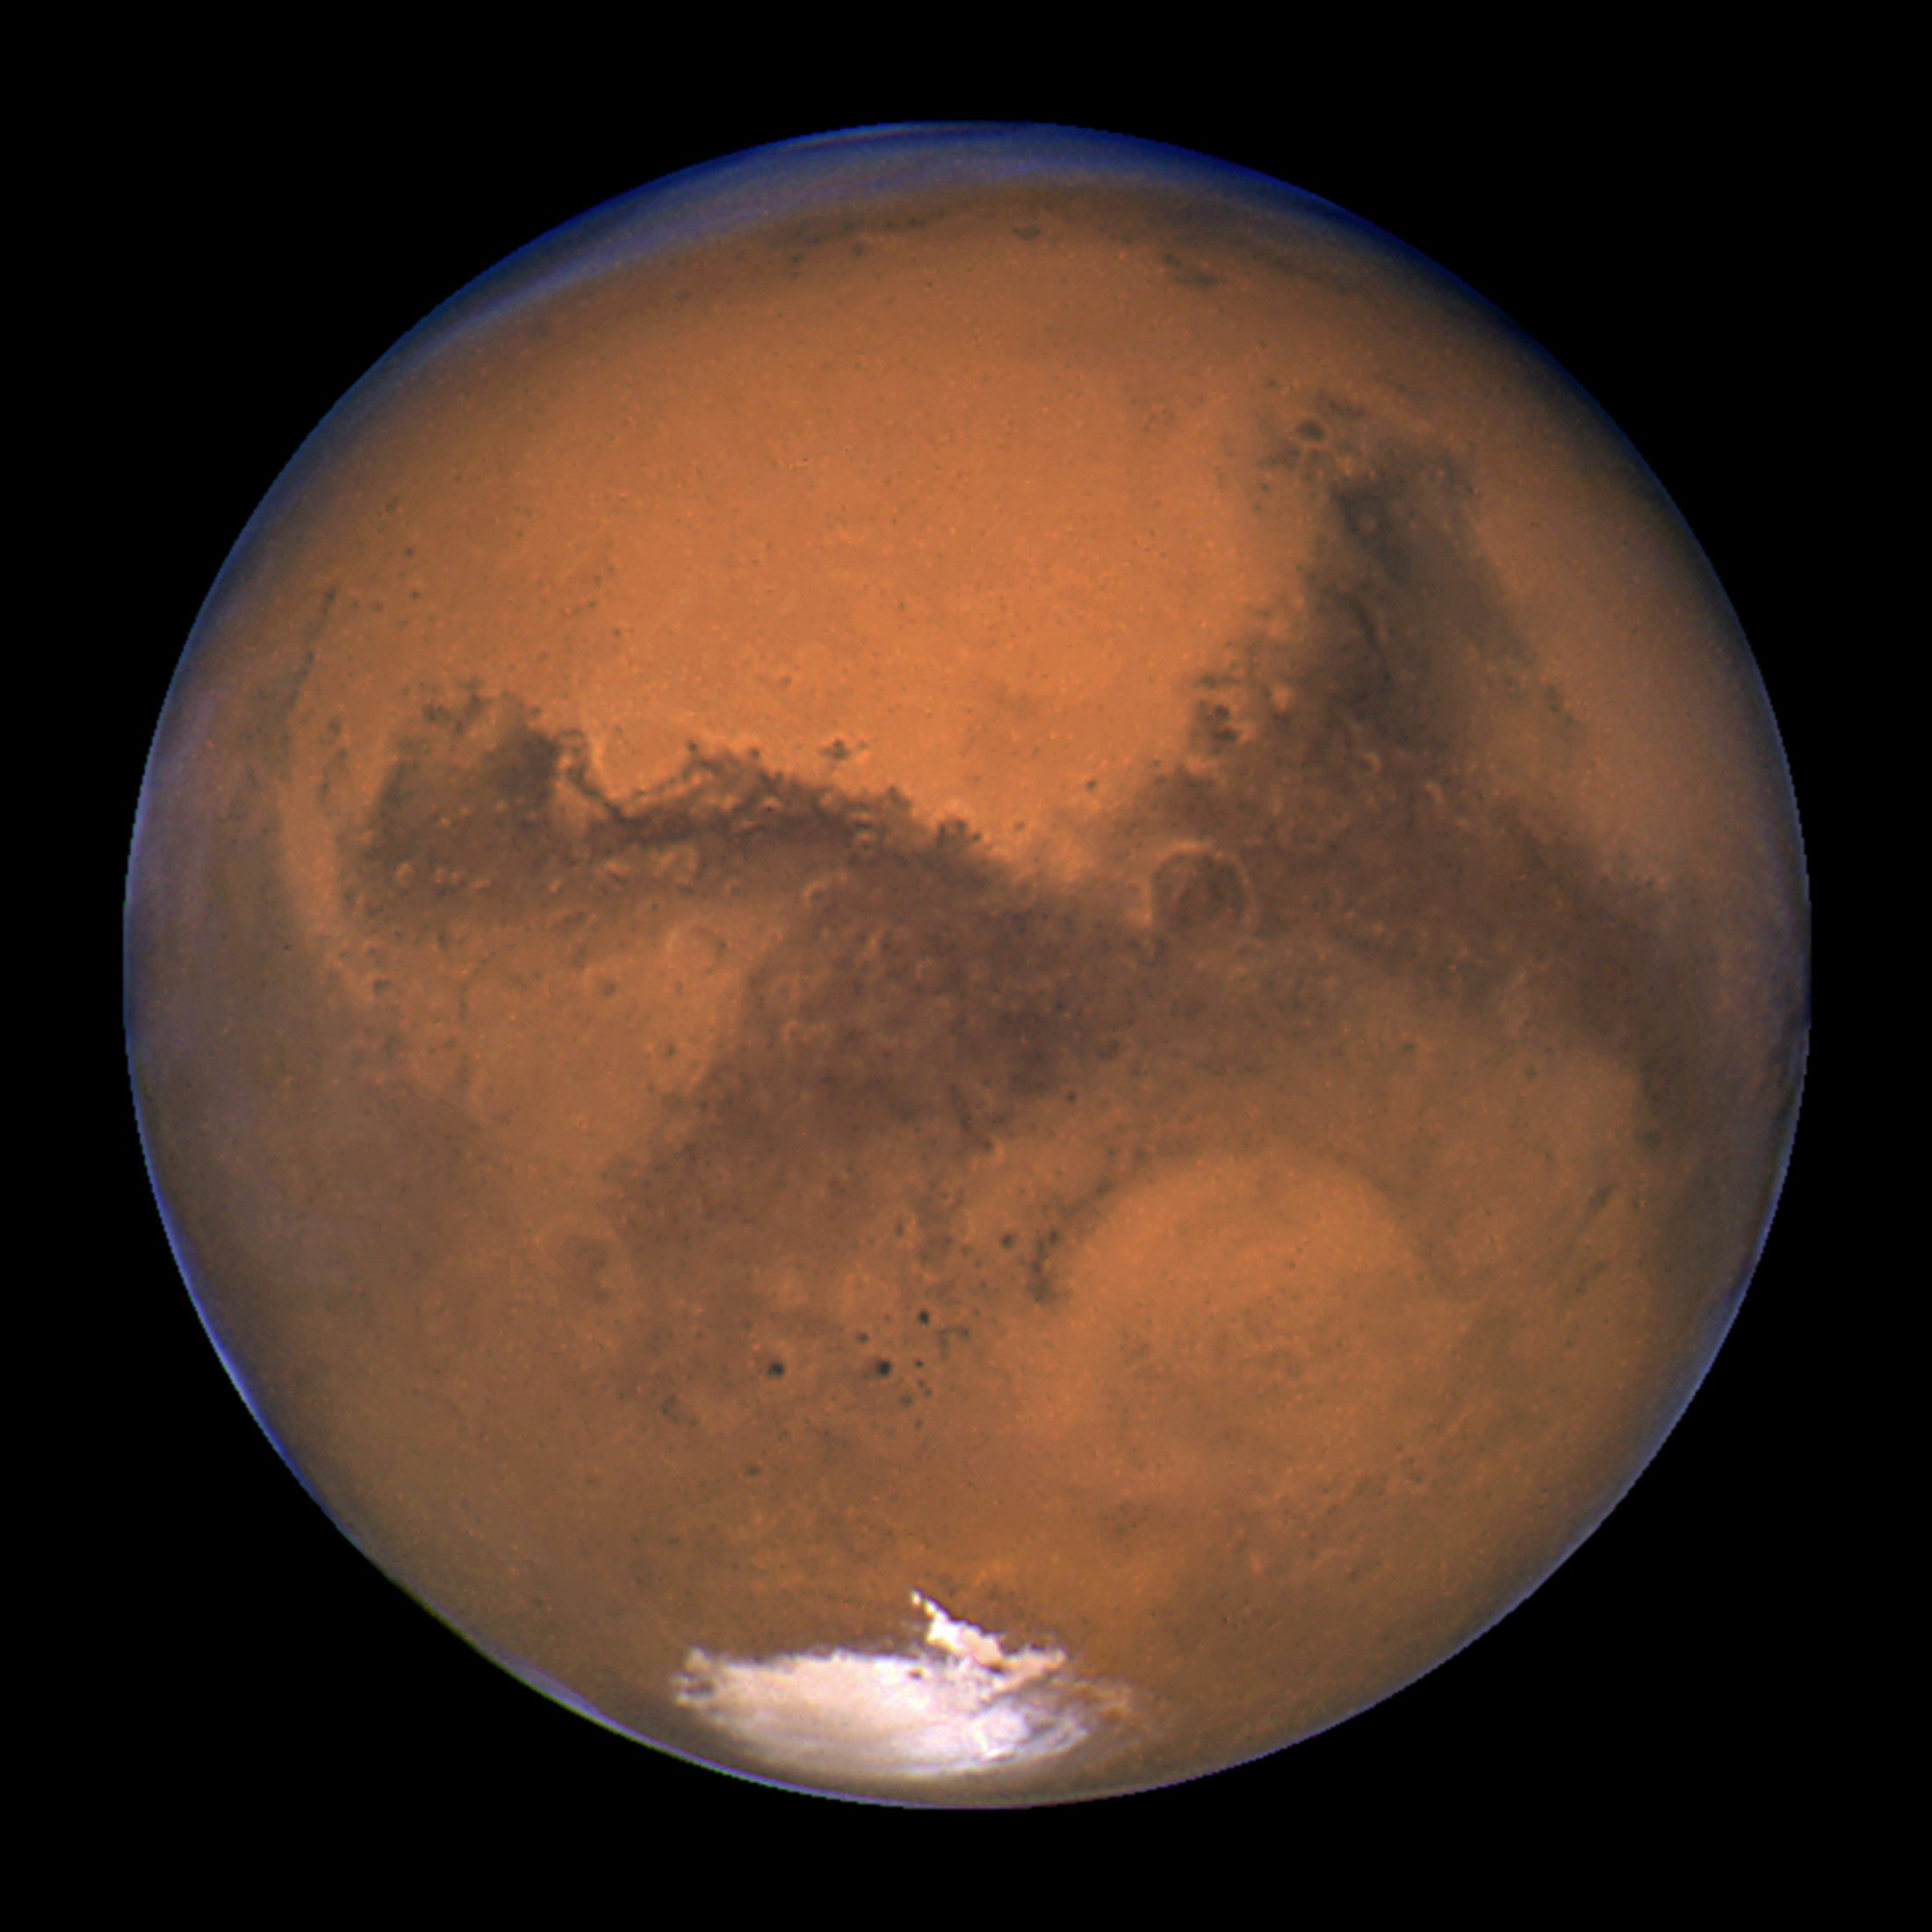 FILE PHOTO: NASA's Hubble Space Telescope took this snapshot of Mars 11 hours before the planet made its closest approach to Earth on August 26, 2003. REUTERS/J. Bell (Cornell U.) and M. Wolff (SSI)/NASA/File Photo